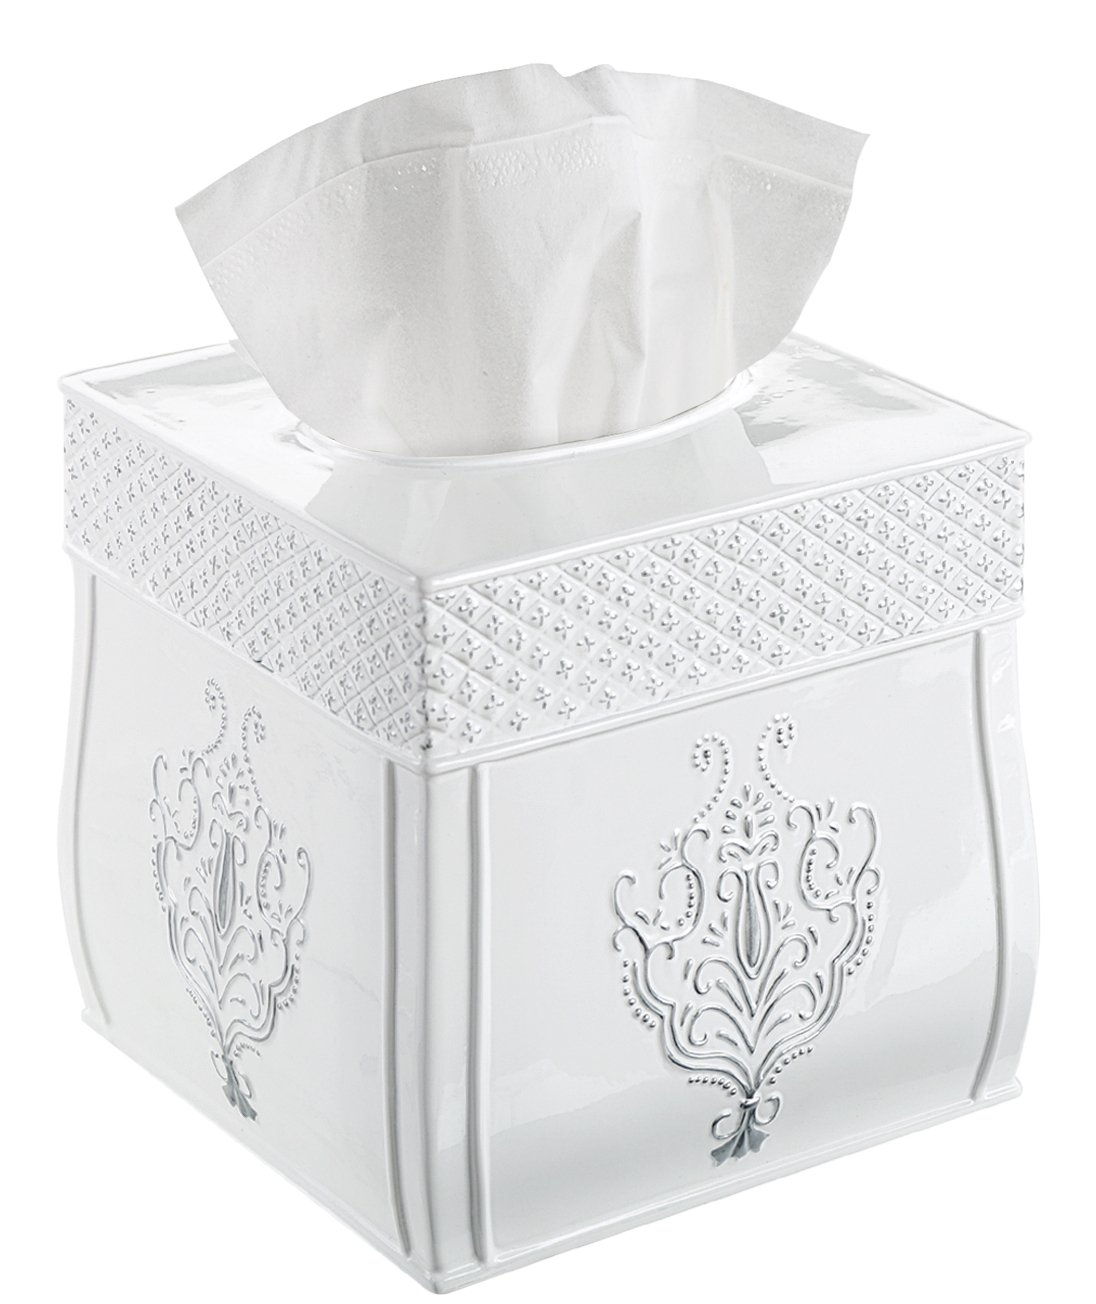 Creative Scents Square Tissue Box Cover – Decorative Tissue Holder is Finished in Beautiful Vintage White, Bathroom Accessories